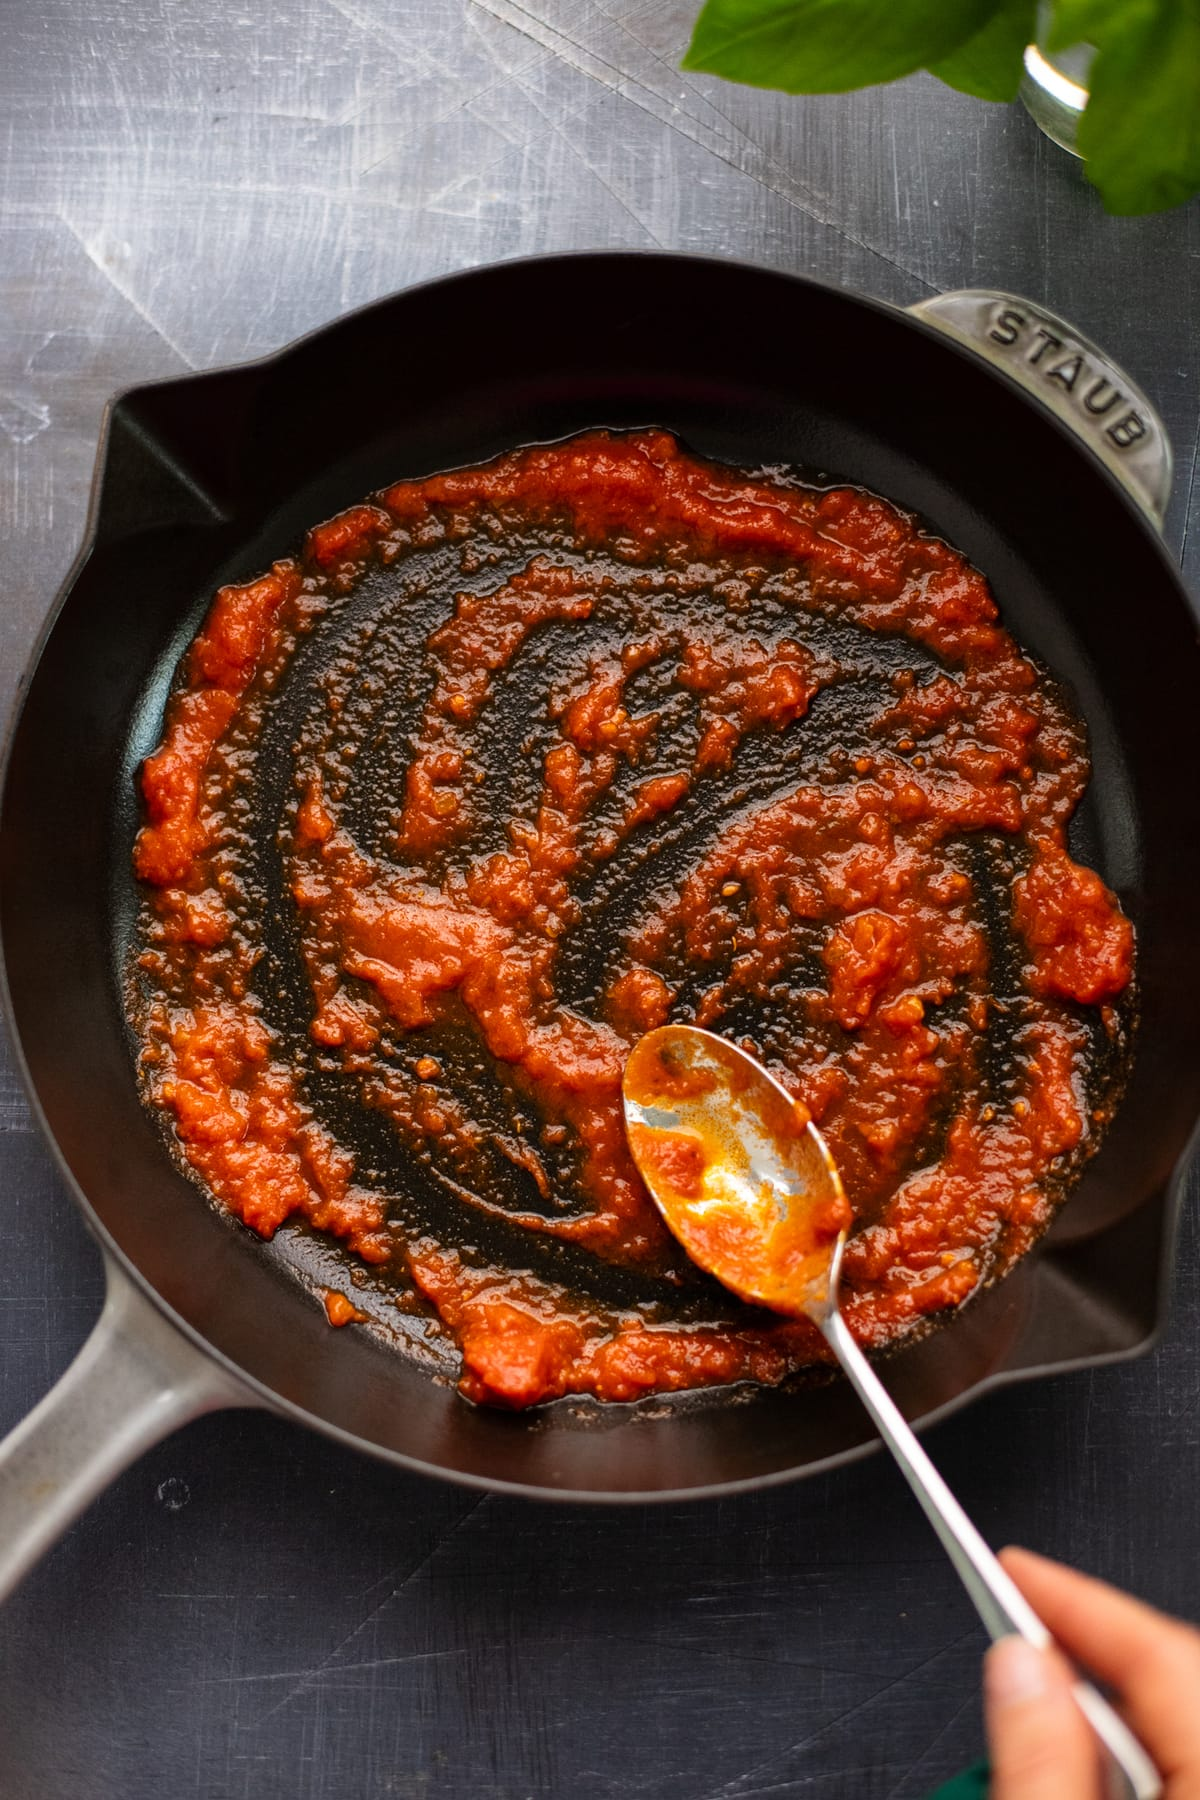 spoon spreading red tomato sauce in cast iron pan on dark gray background.